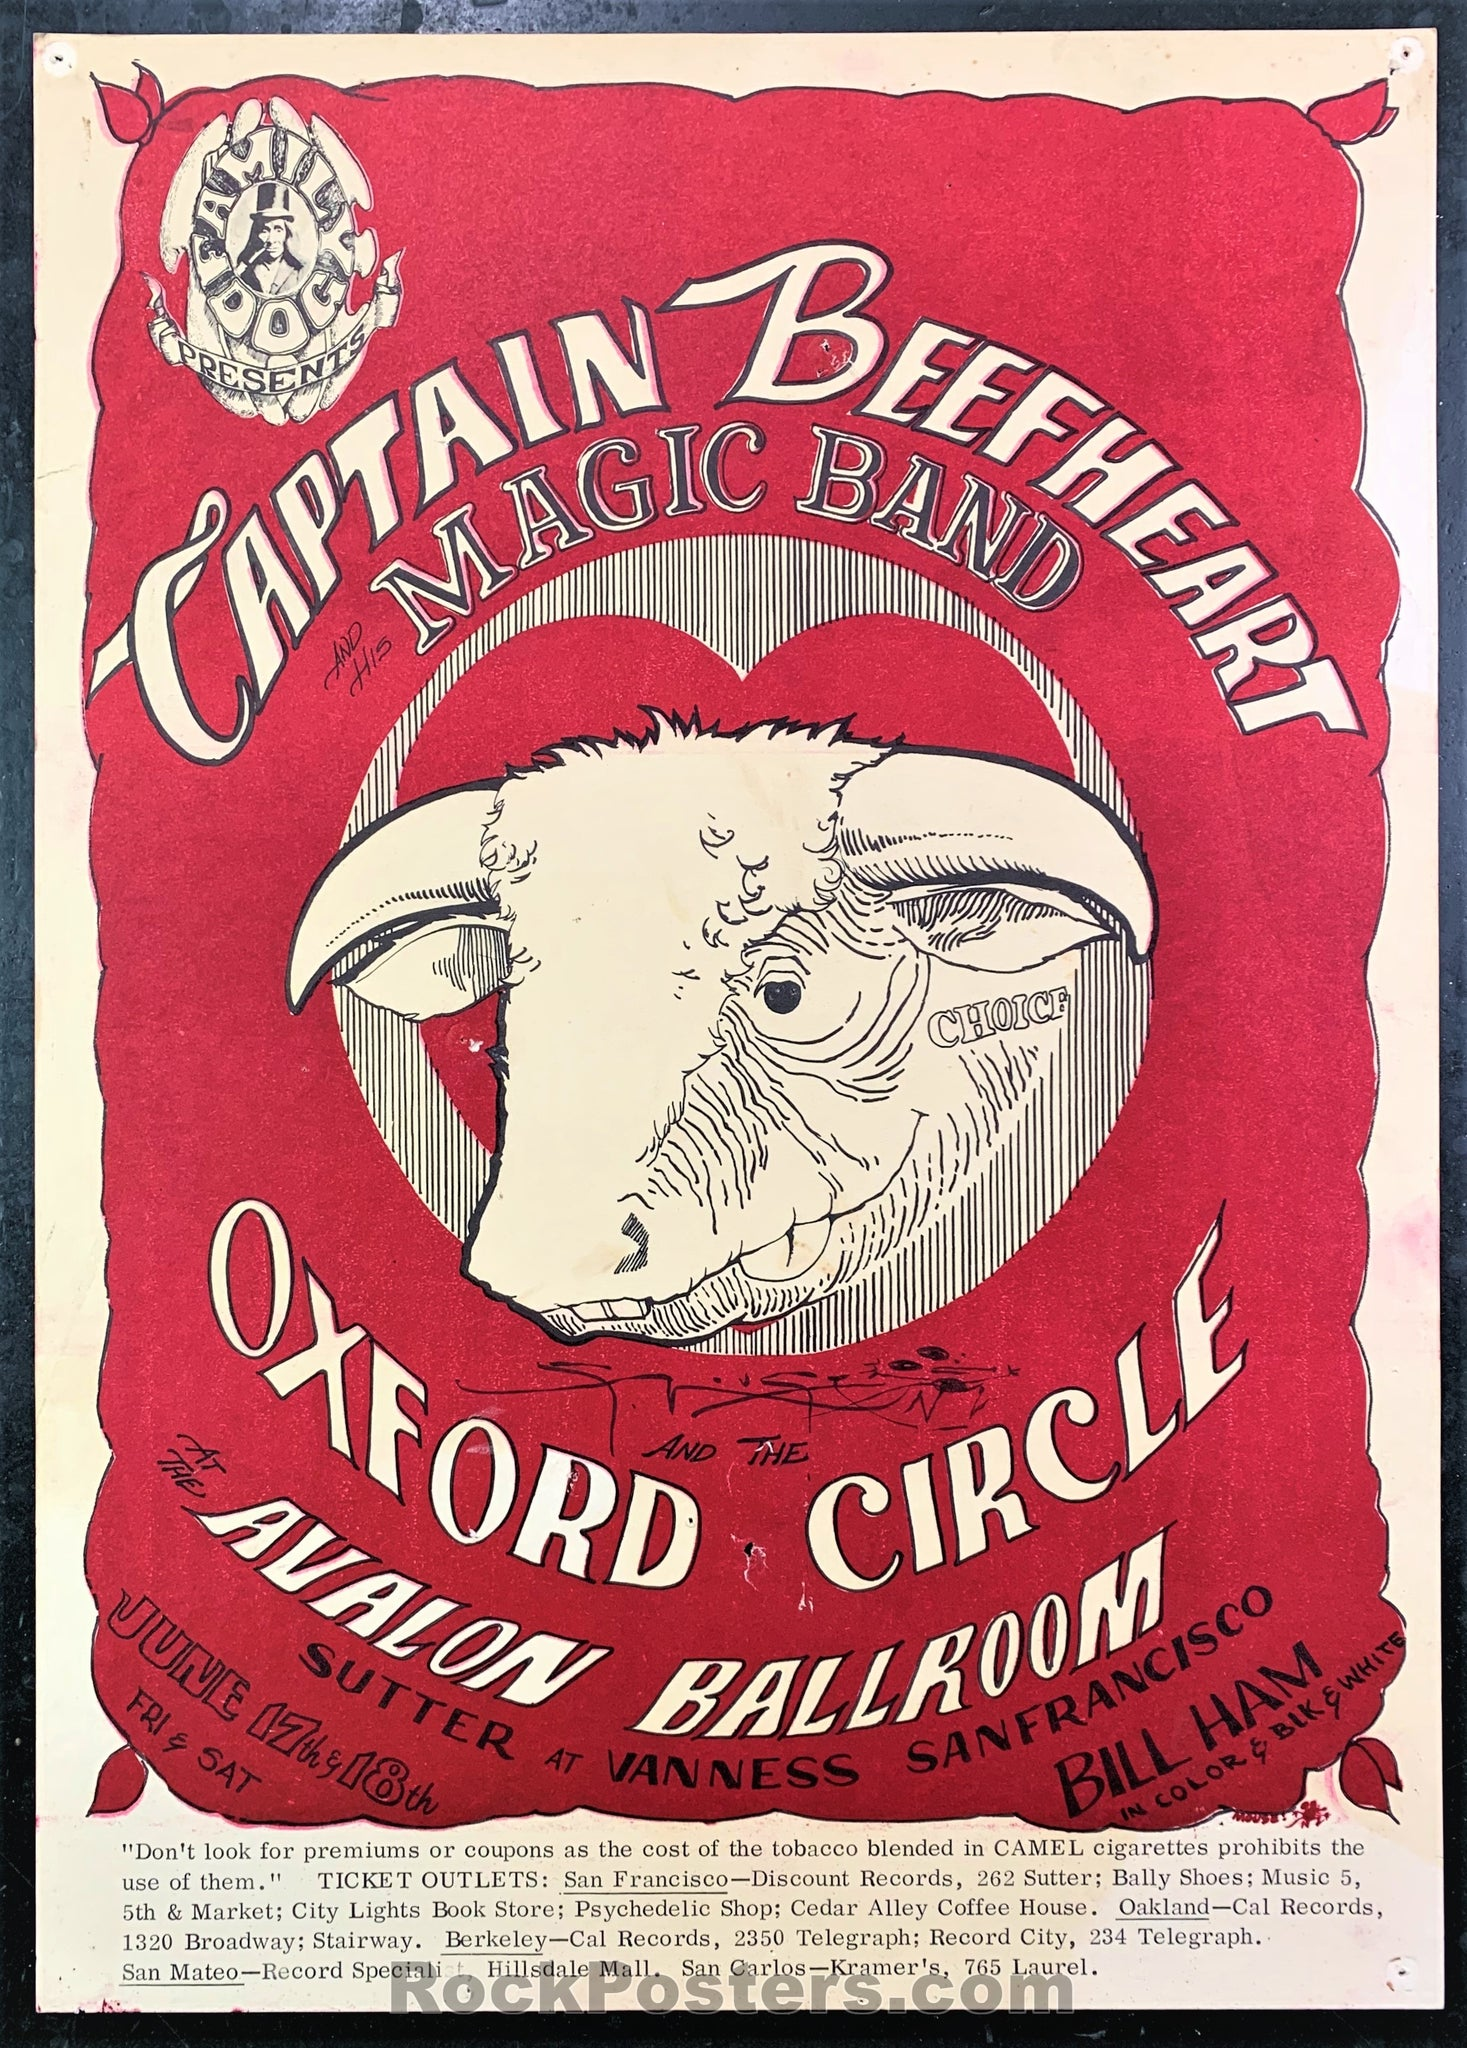 AUCTION - FD-13 - Captain Beefheart Poster - Mouse Signed - Avalon Ballroom - Excellent